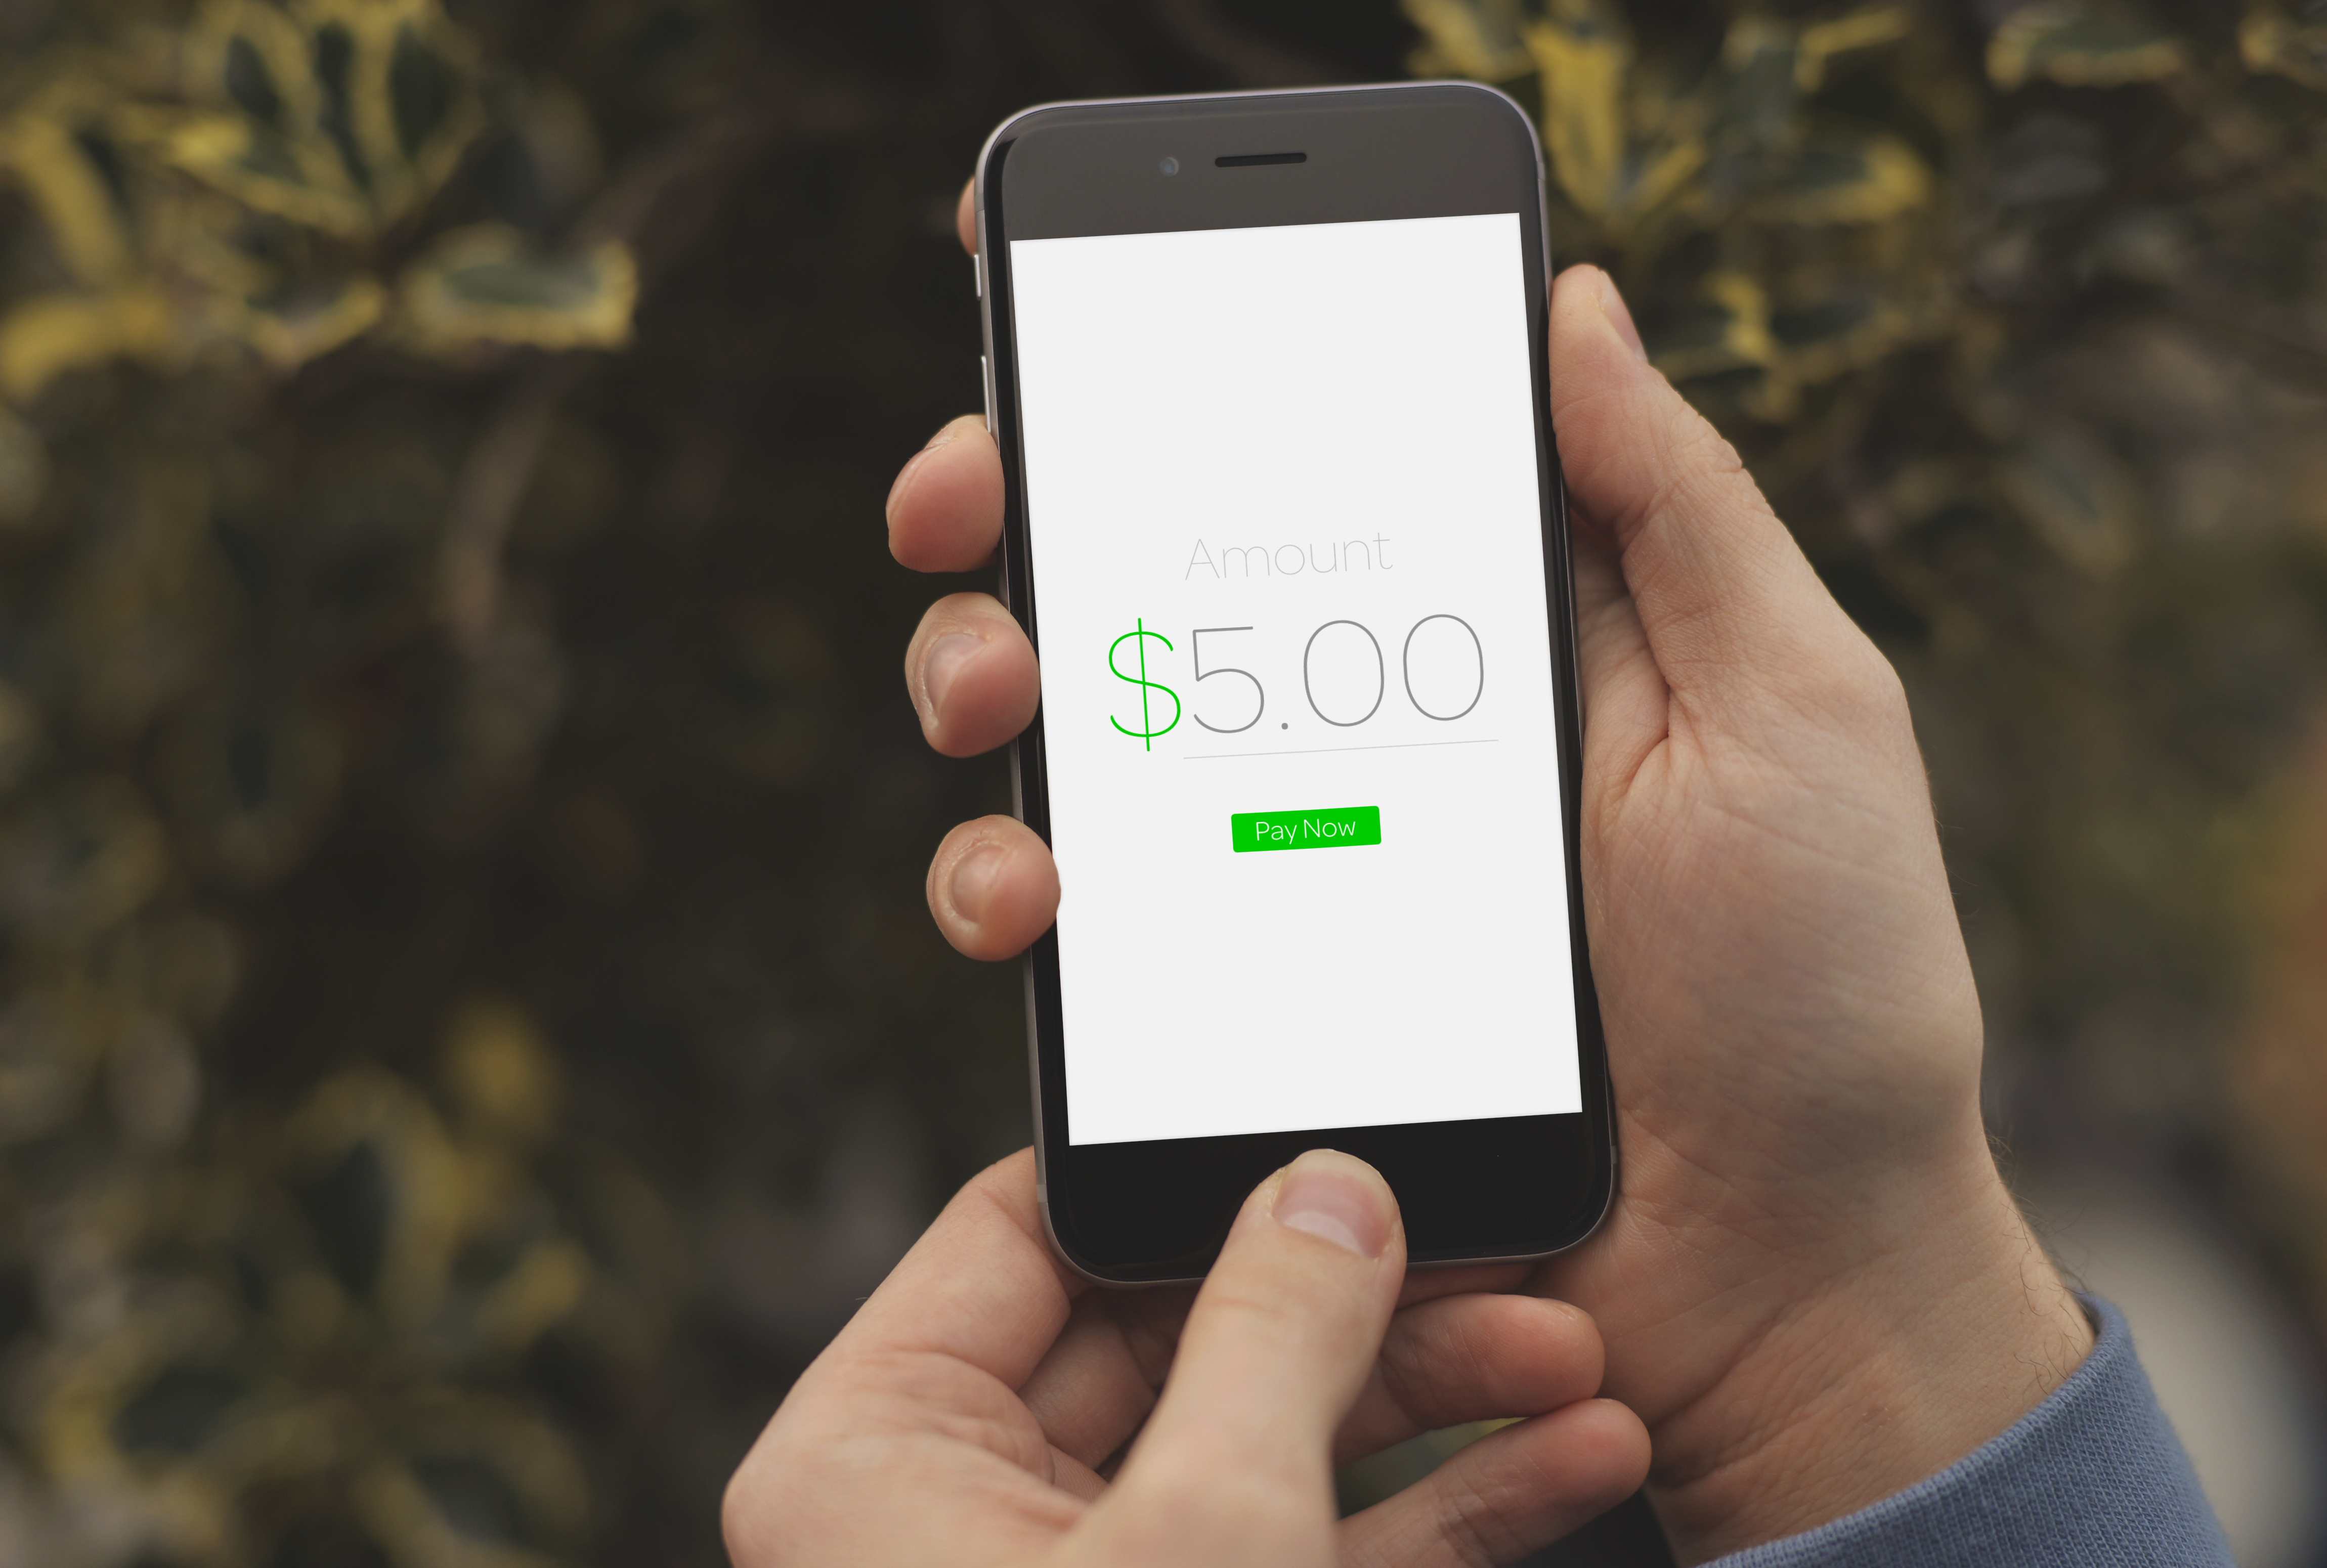 The Best Mobile Payment Apps in 2019